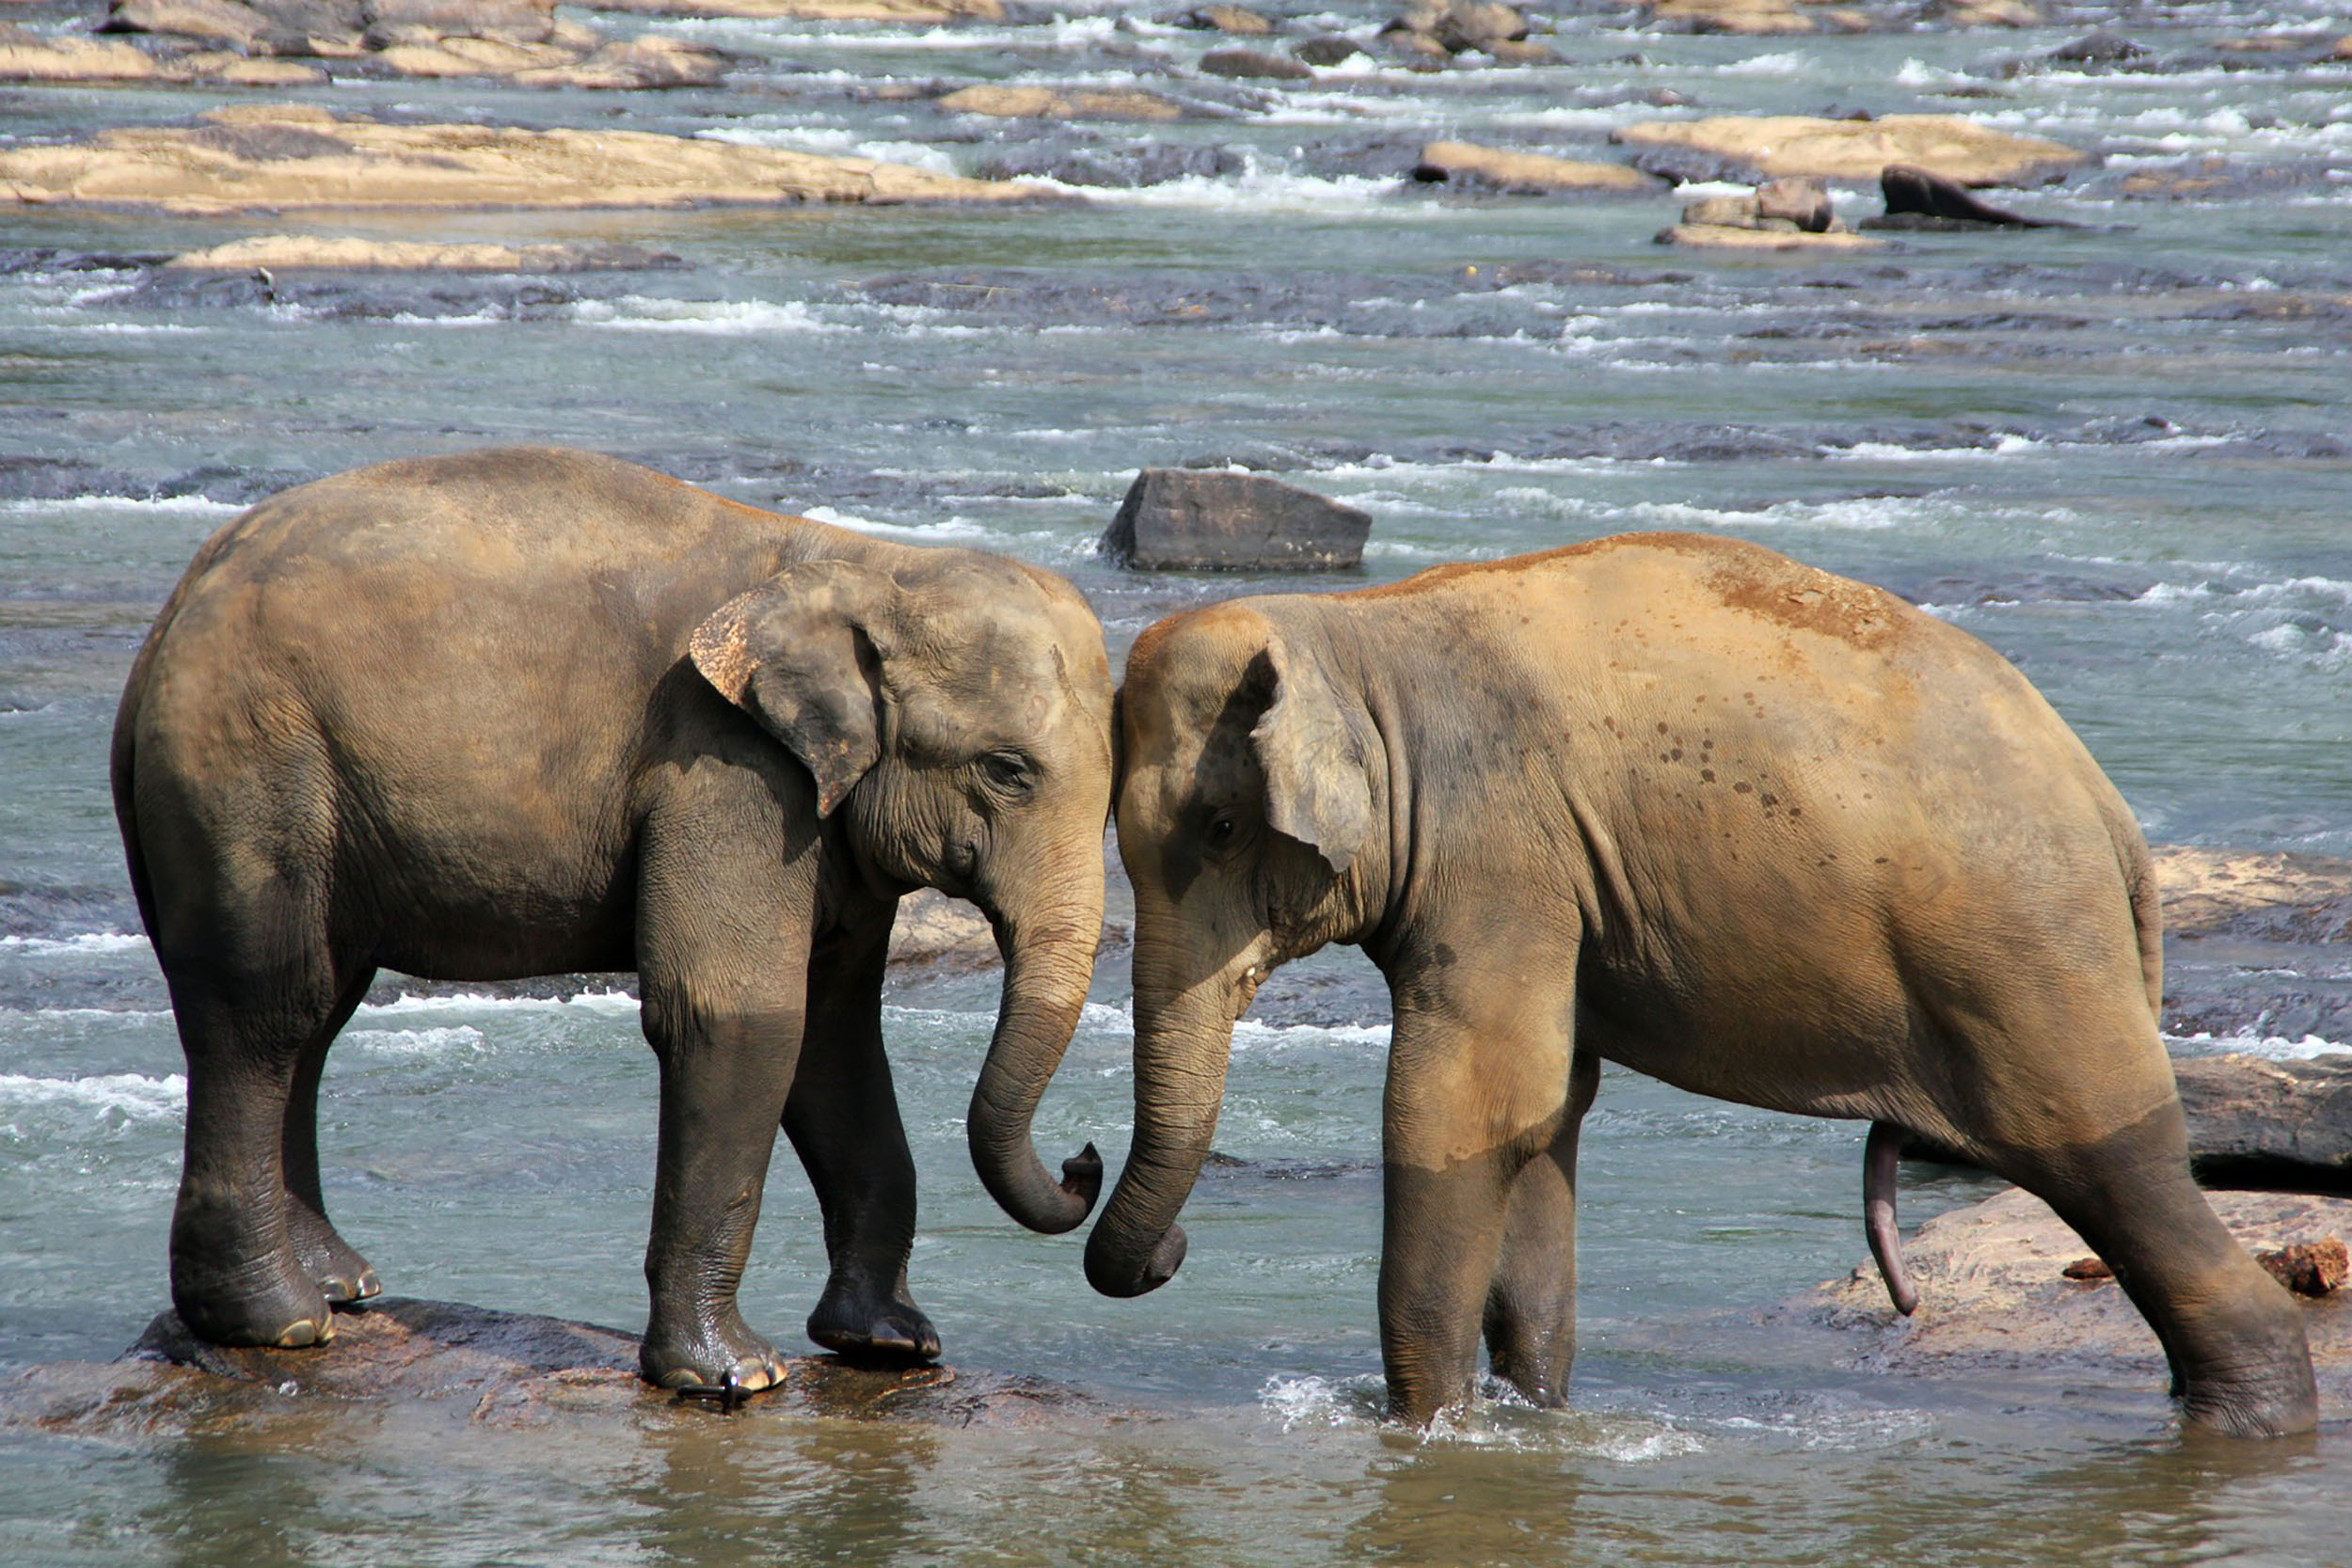 Sri Lanka is famous for its population of elephants